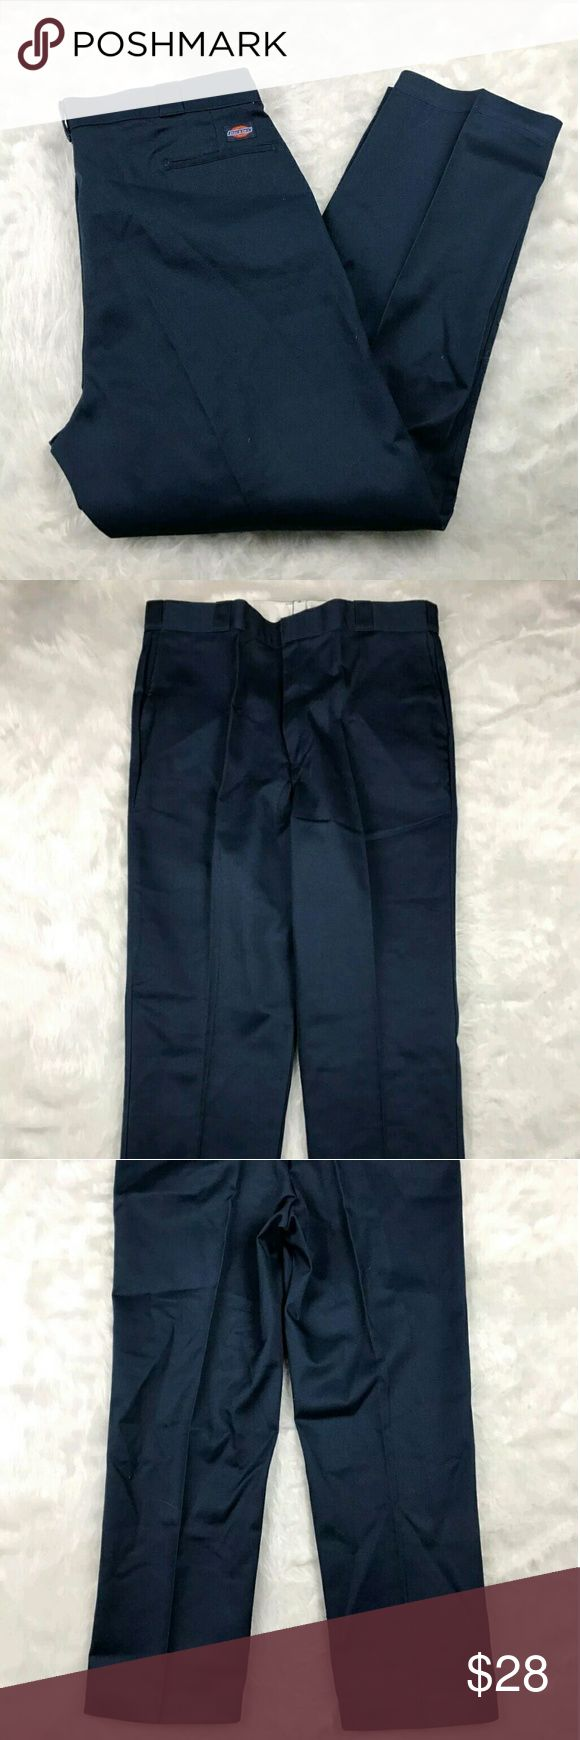 "Dickies Men's Khaki Pants Dickies navy blue pleated front khaki pants. Mens size 44X32. Gently used, without flaws. See pictures for details.  Waist laying flat - 21.5"" Rise - 15"" Inseam - 32""  Inventory 05232017 Dickies Pants Chinos & Khakis"